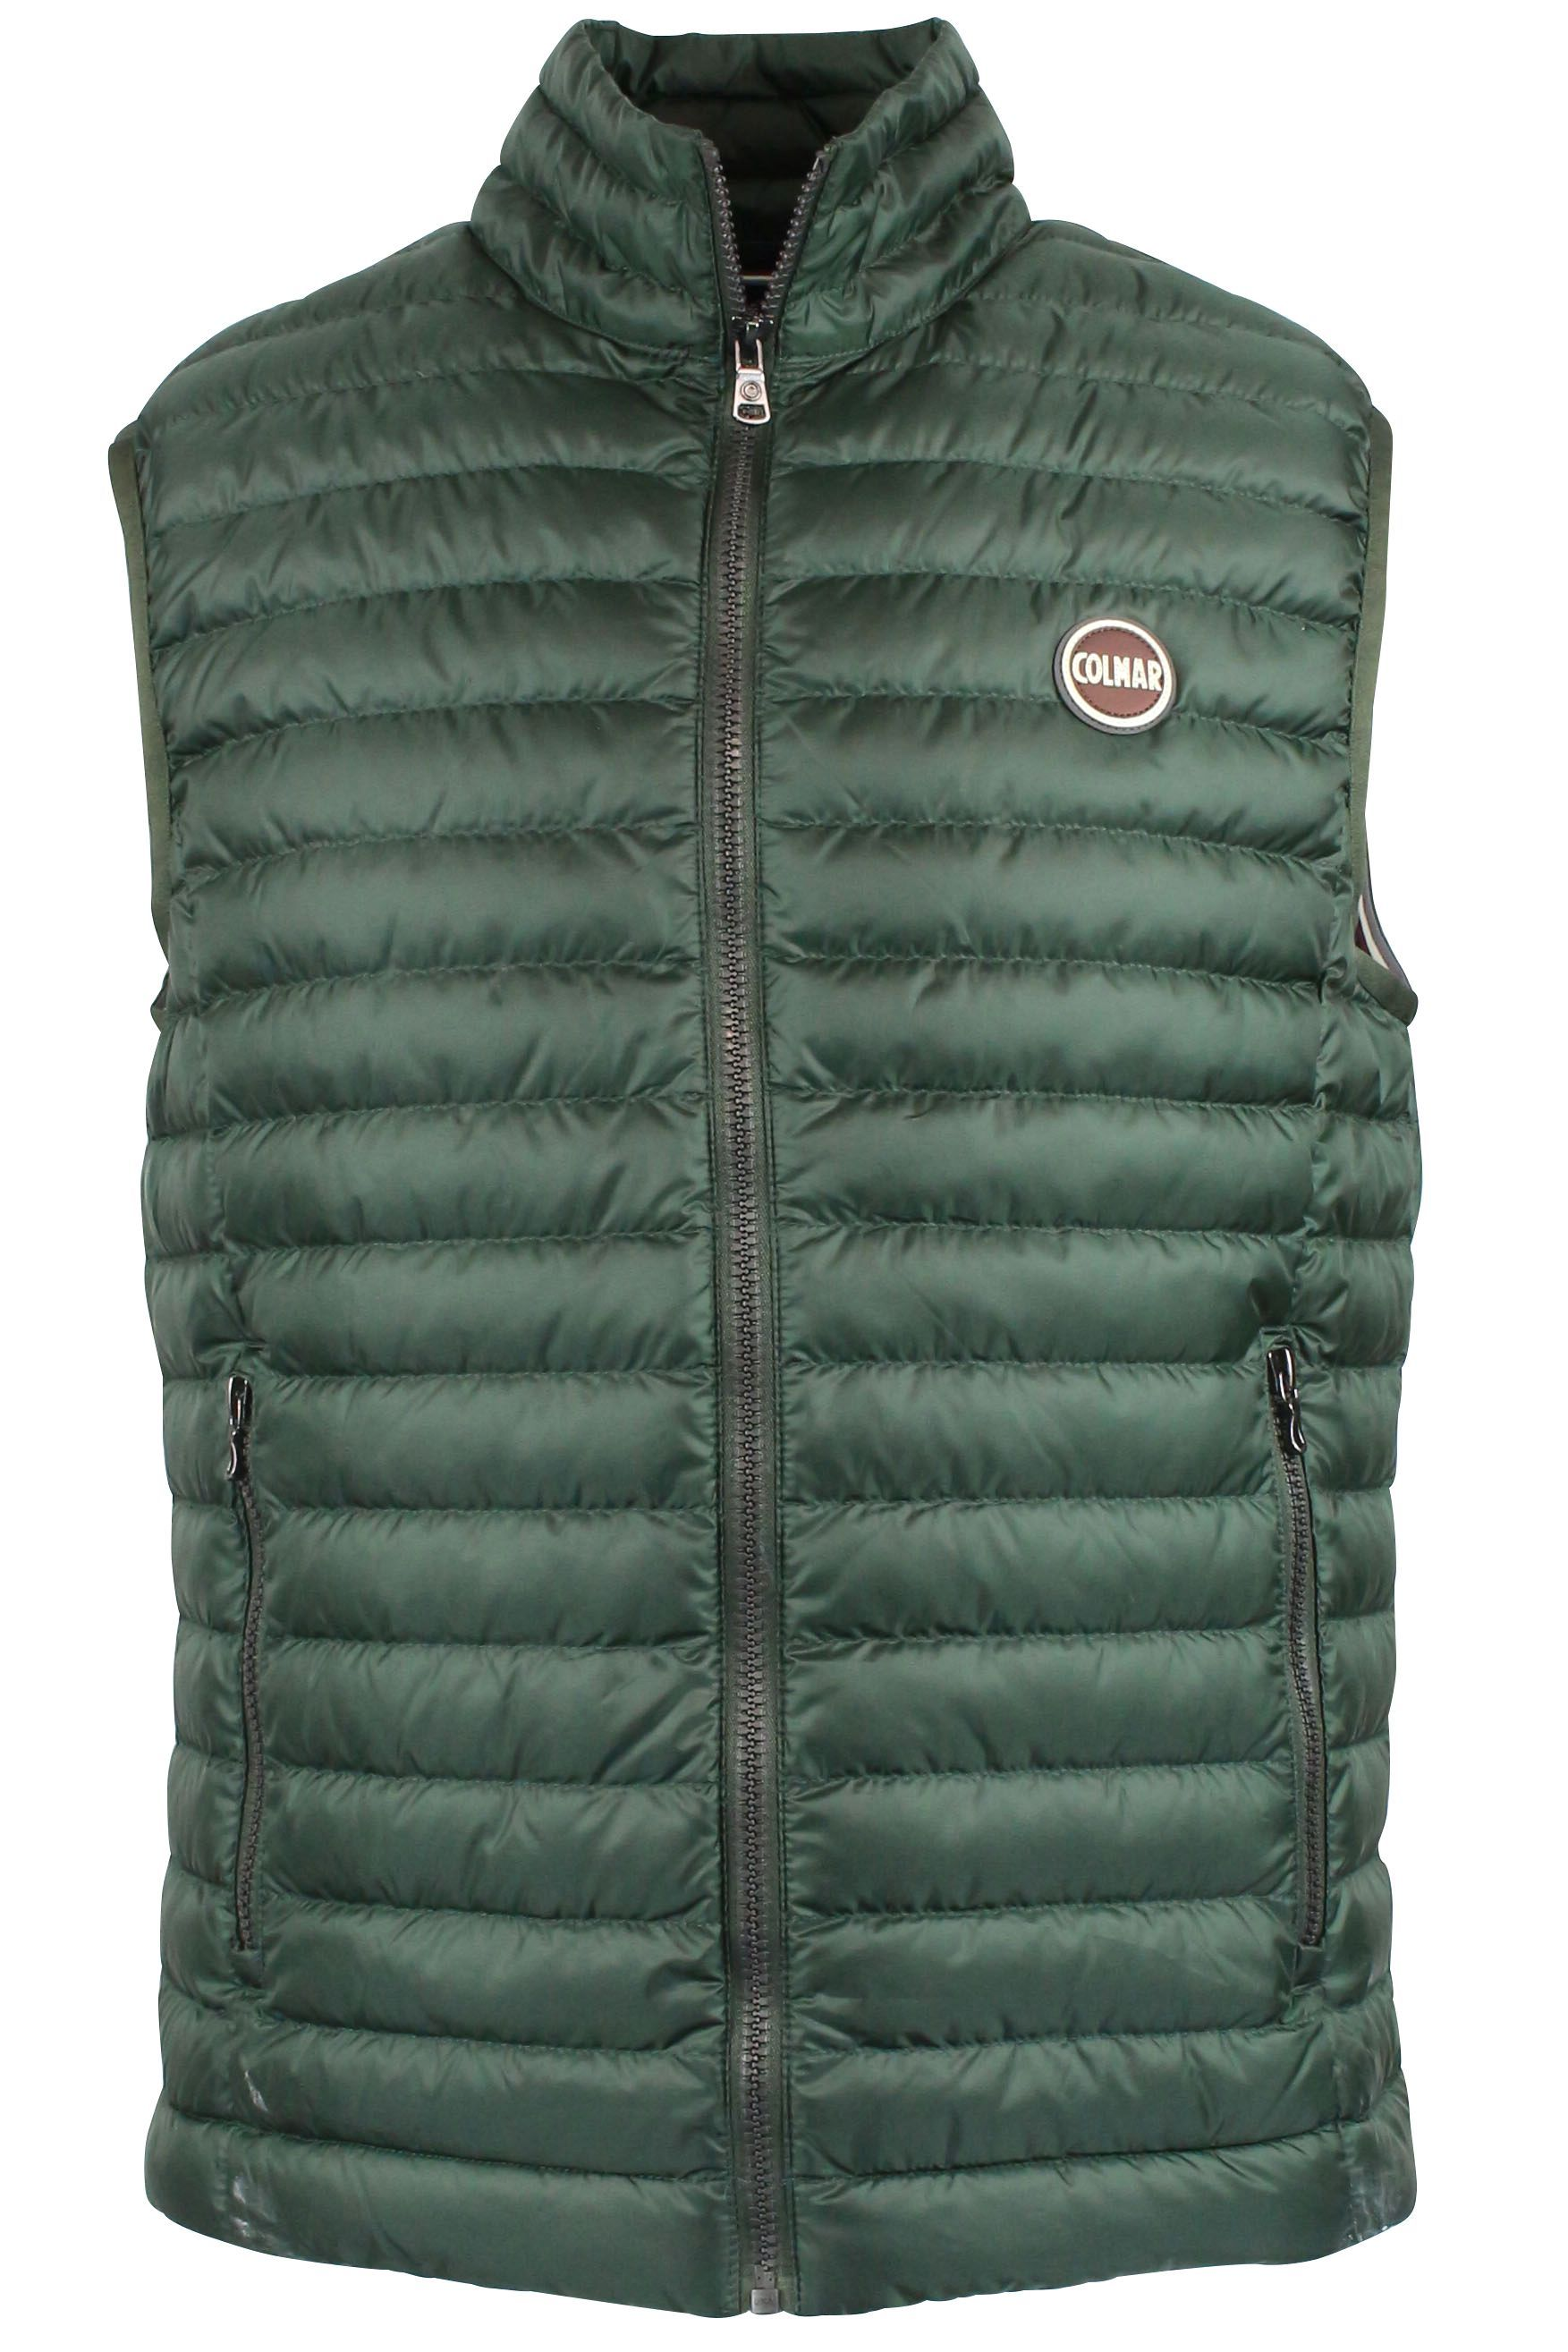 COLMAR ORIGINALS MEN'S 1278R1MQ382 GREEN POLYAMIDE VEST